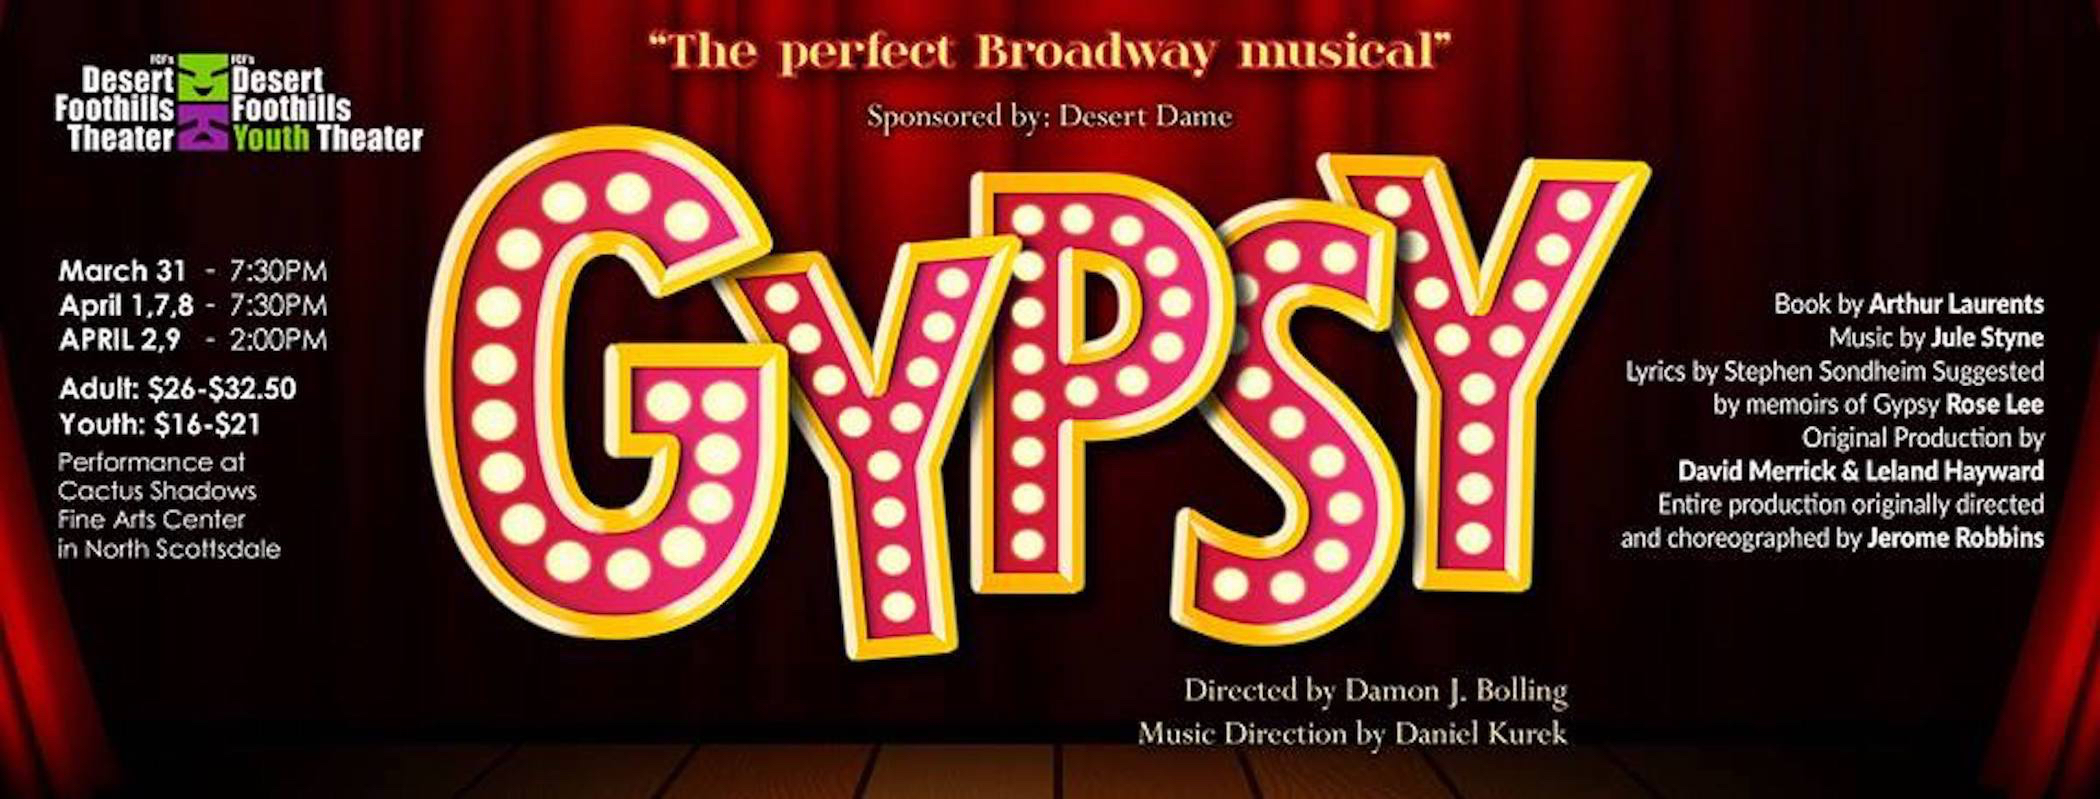 BWW Review: GYPSY at Desert Foothills Theater